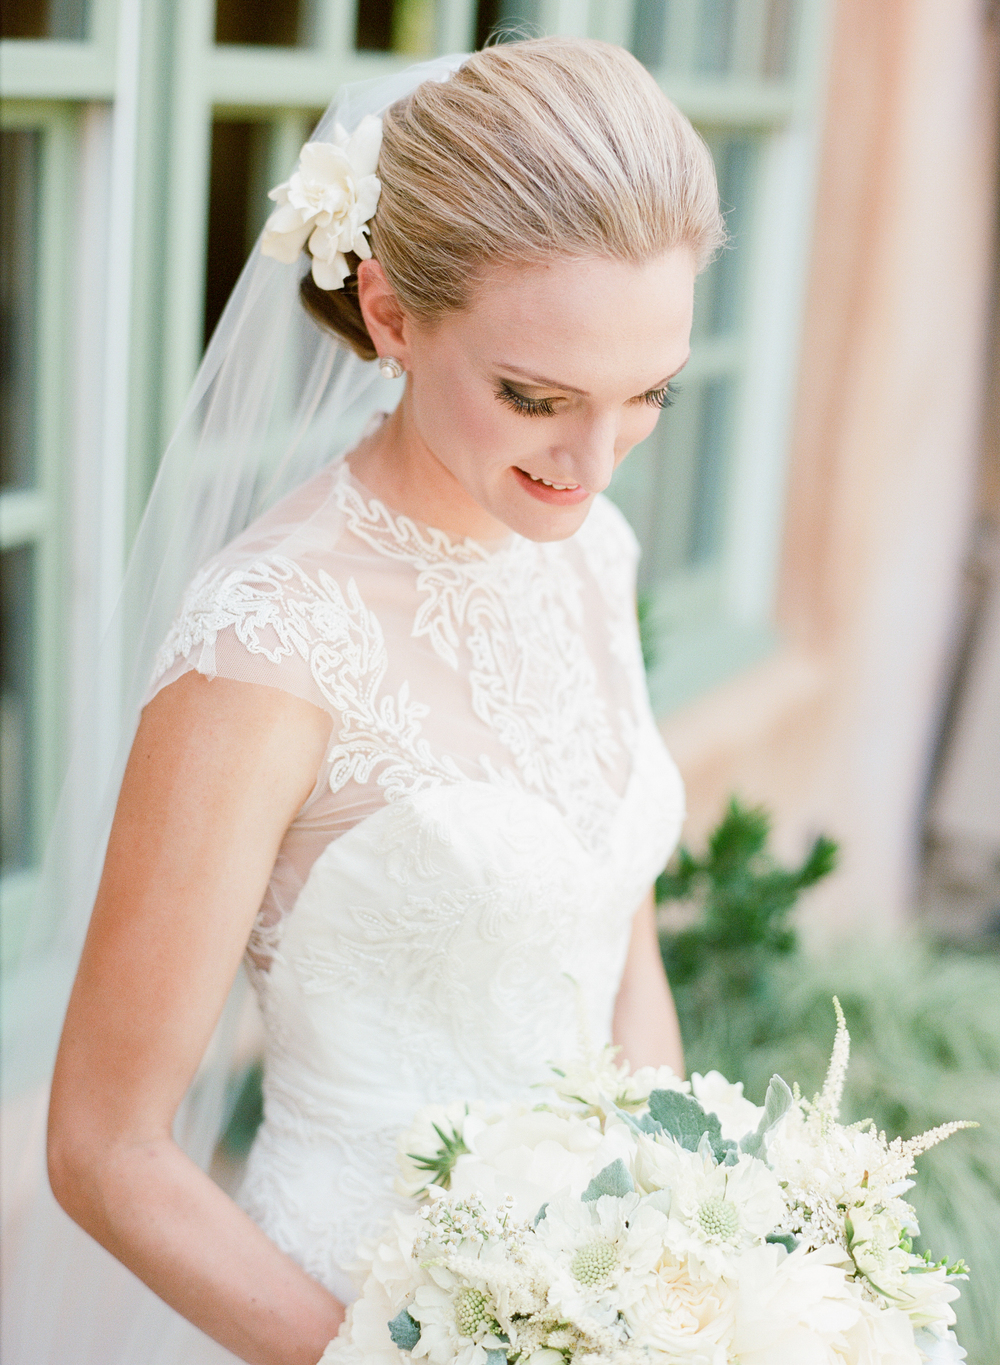 A glowing classic bride gazes at her white bouquet before the ceremony; photo by Sylvie GIl